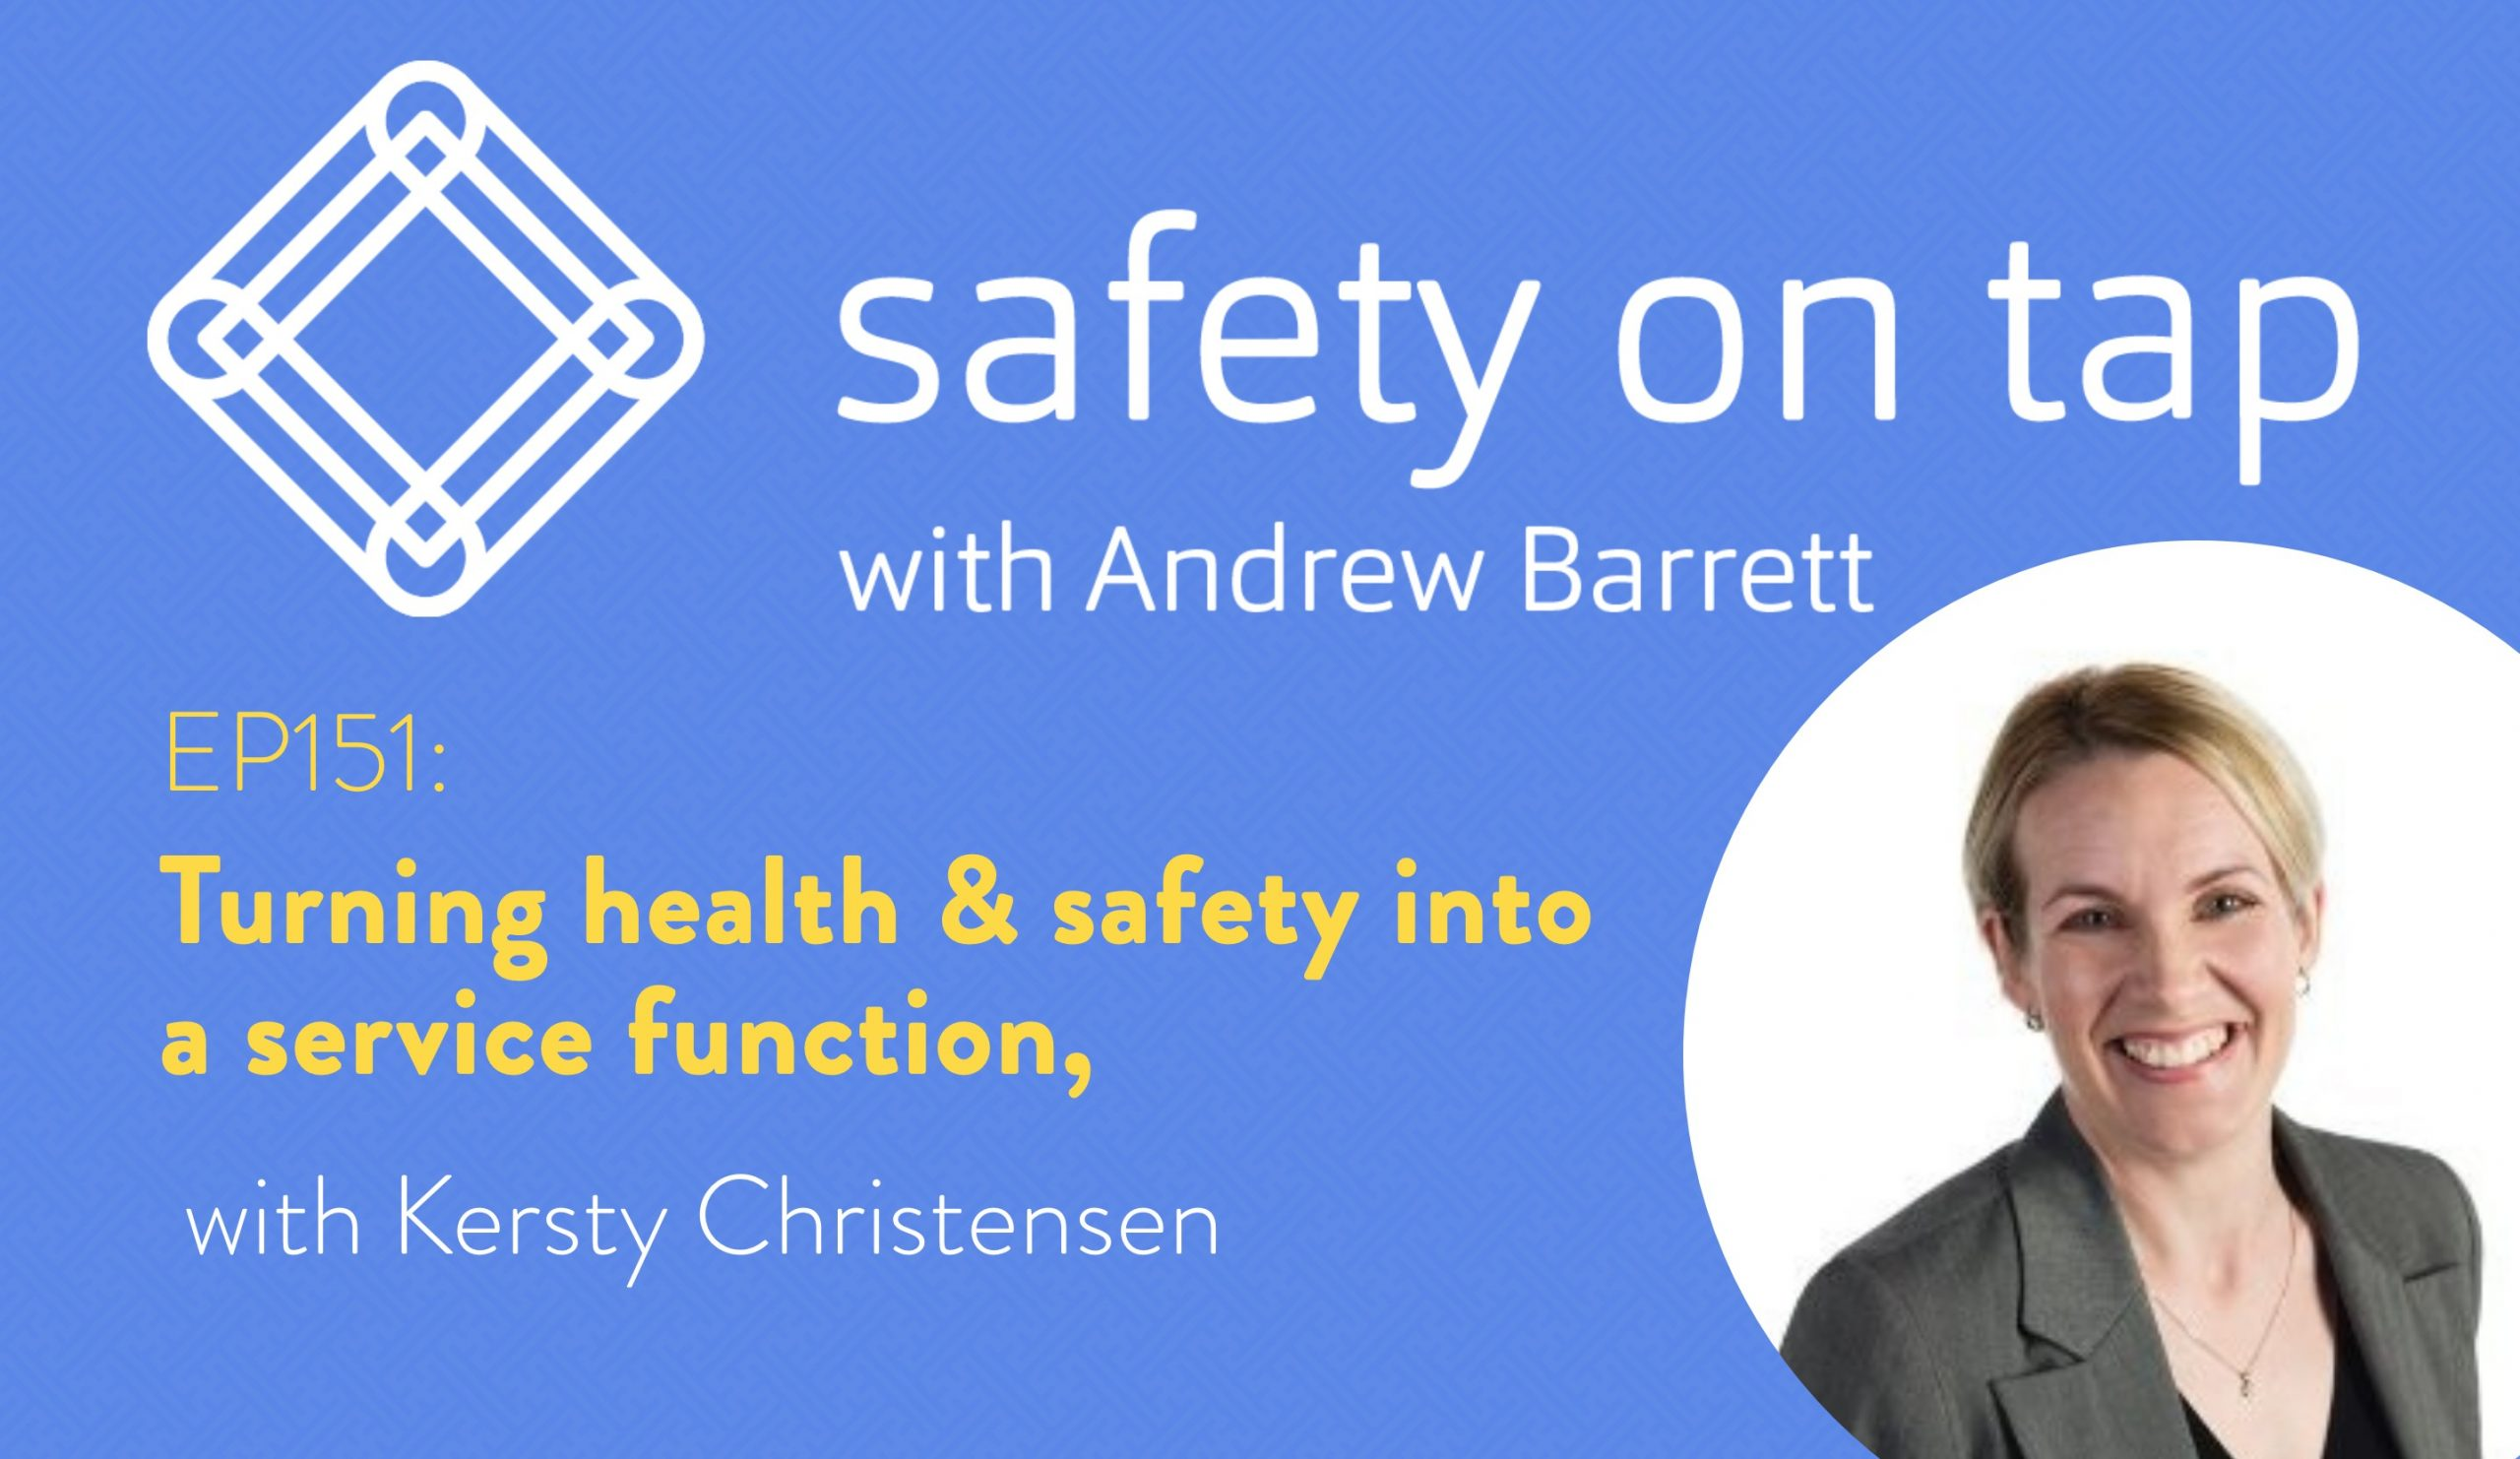 Ep151: Turning health & safety into a service function, with Kersty Christensen